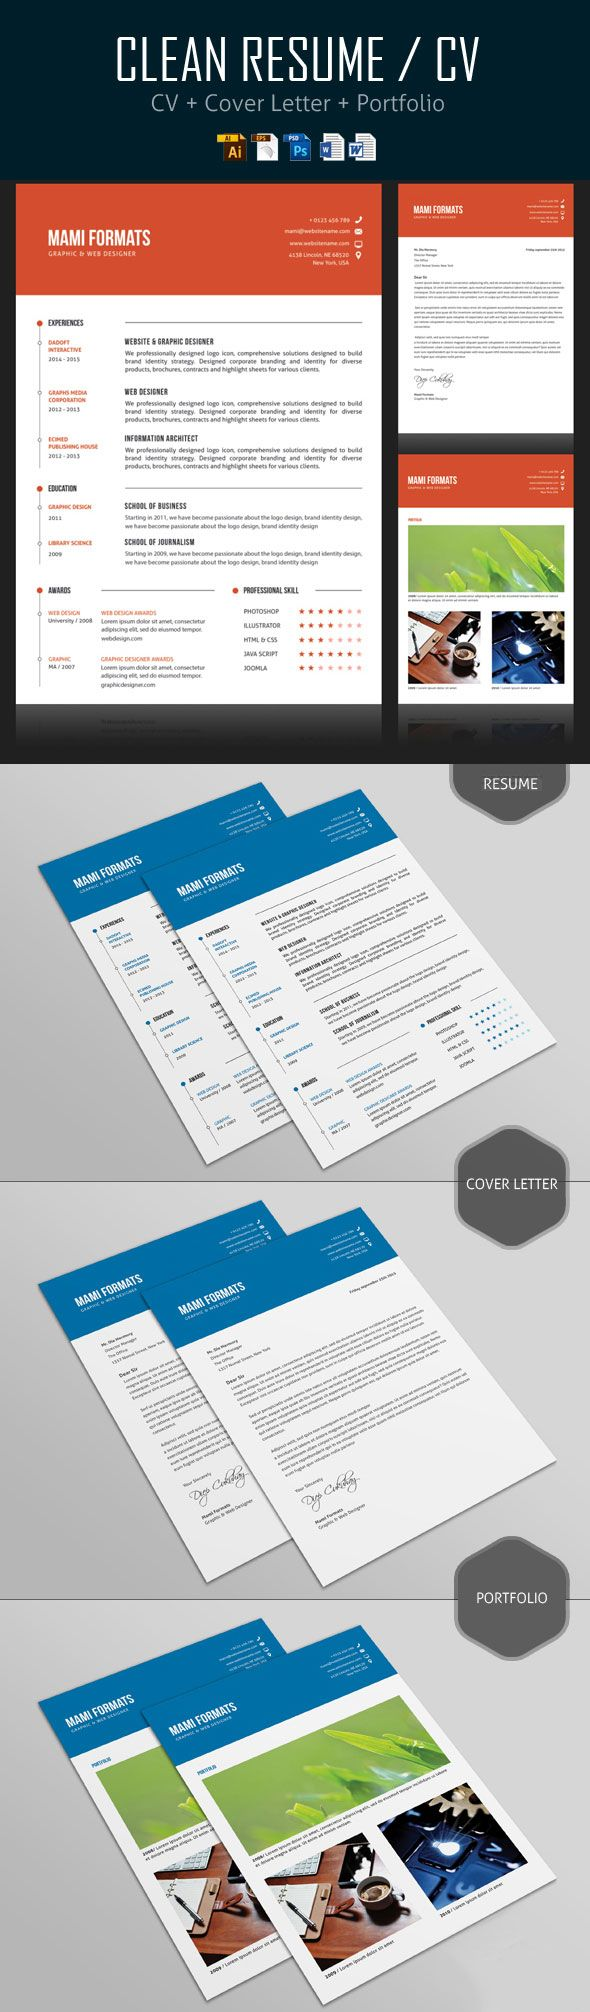 Simple CV/Resume U0026 Cover Letter Design